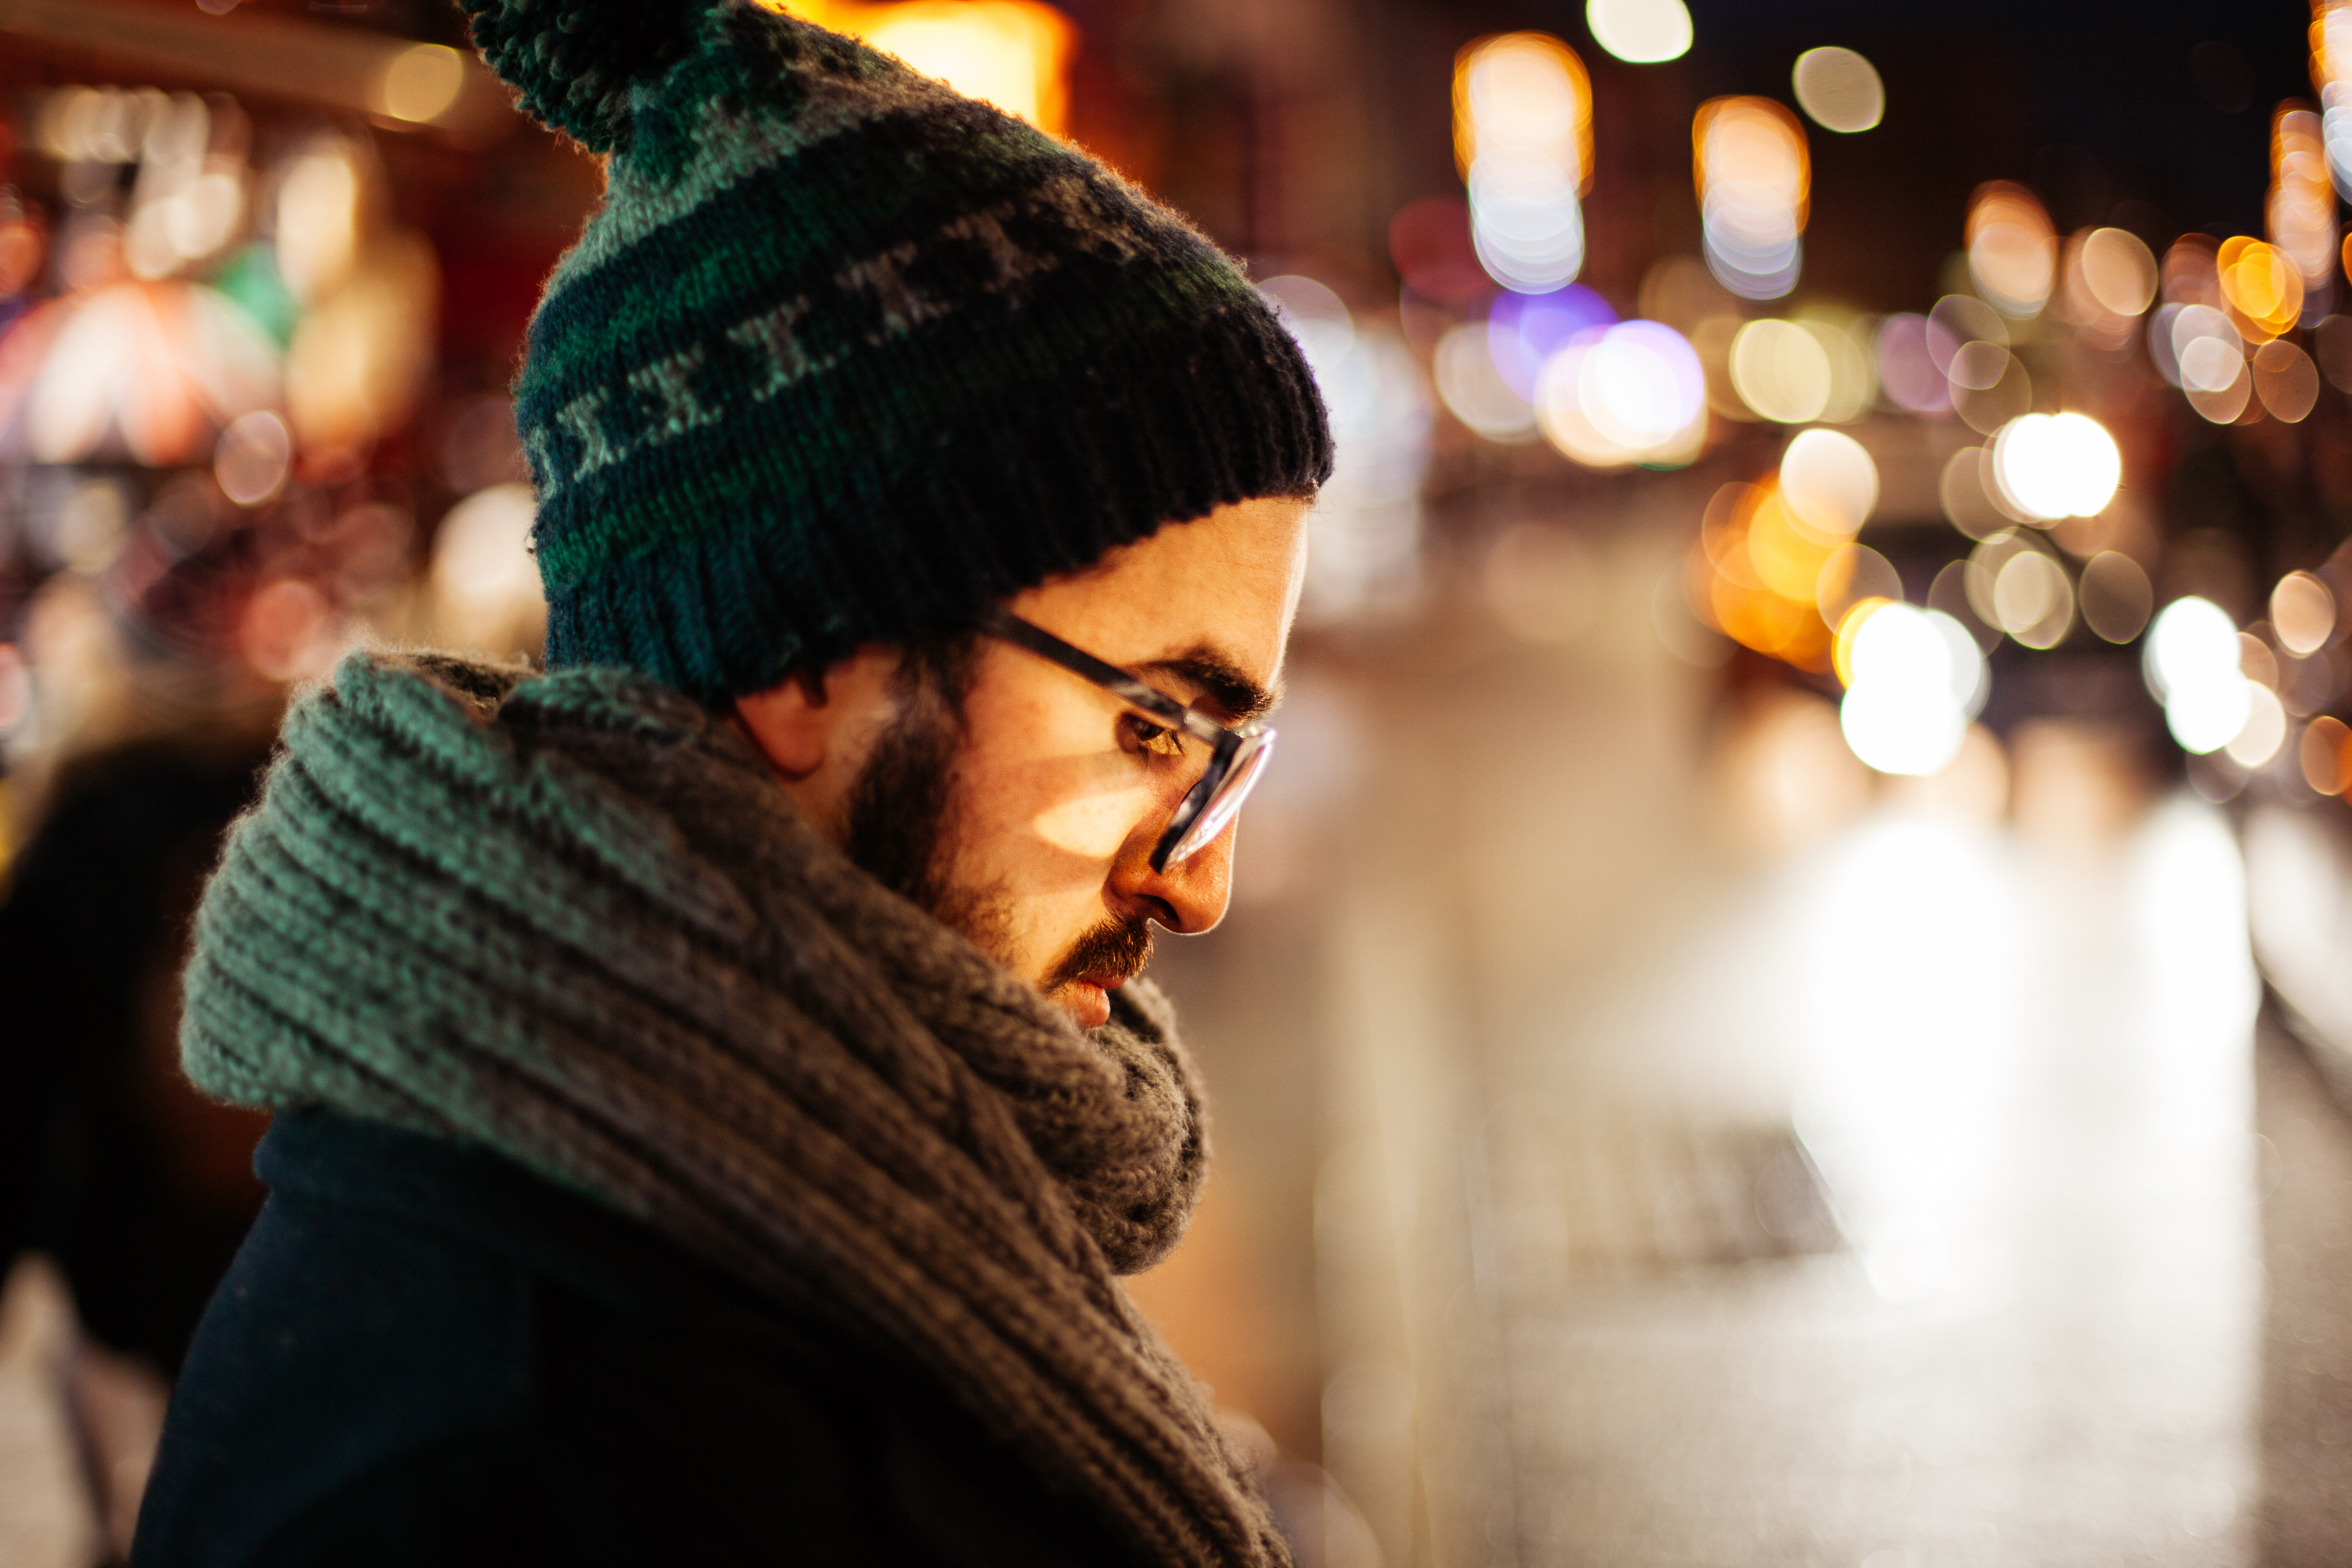 A bearded man in a winter cap and thick scarf with bokeh effect in the background.